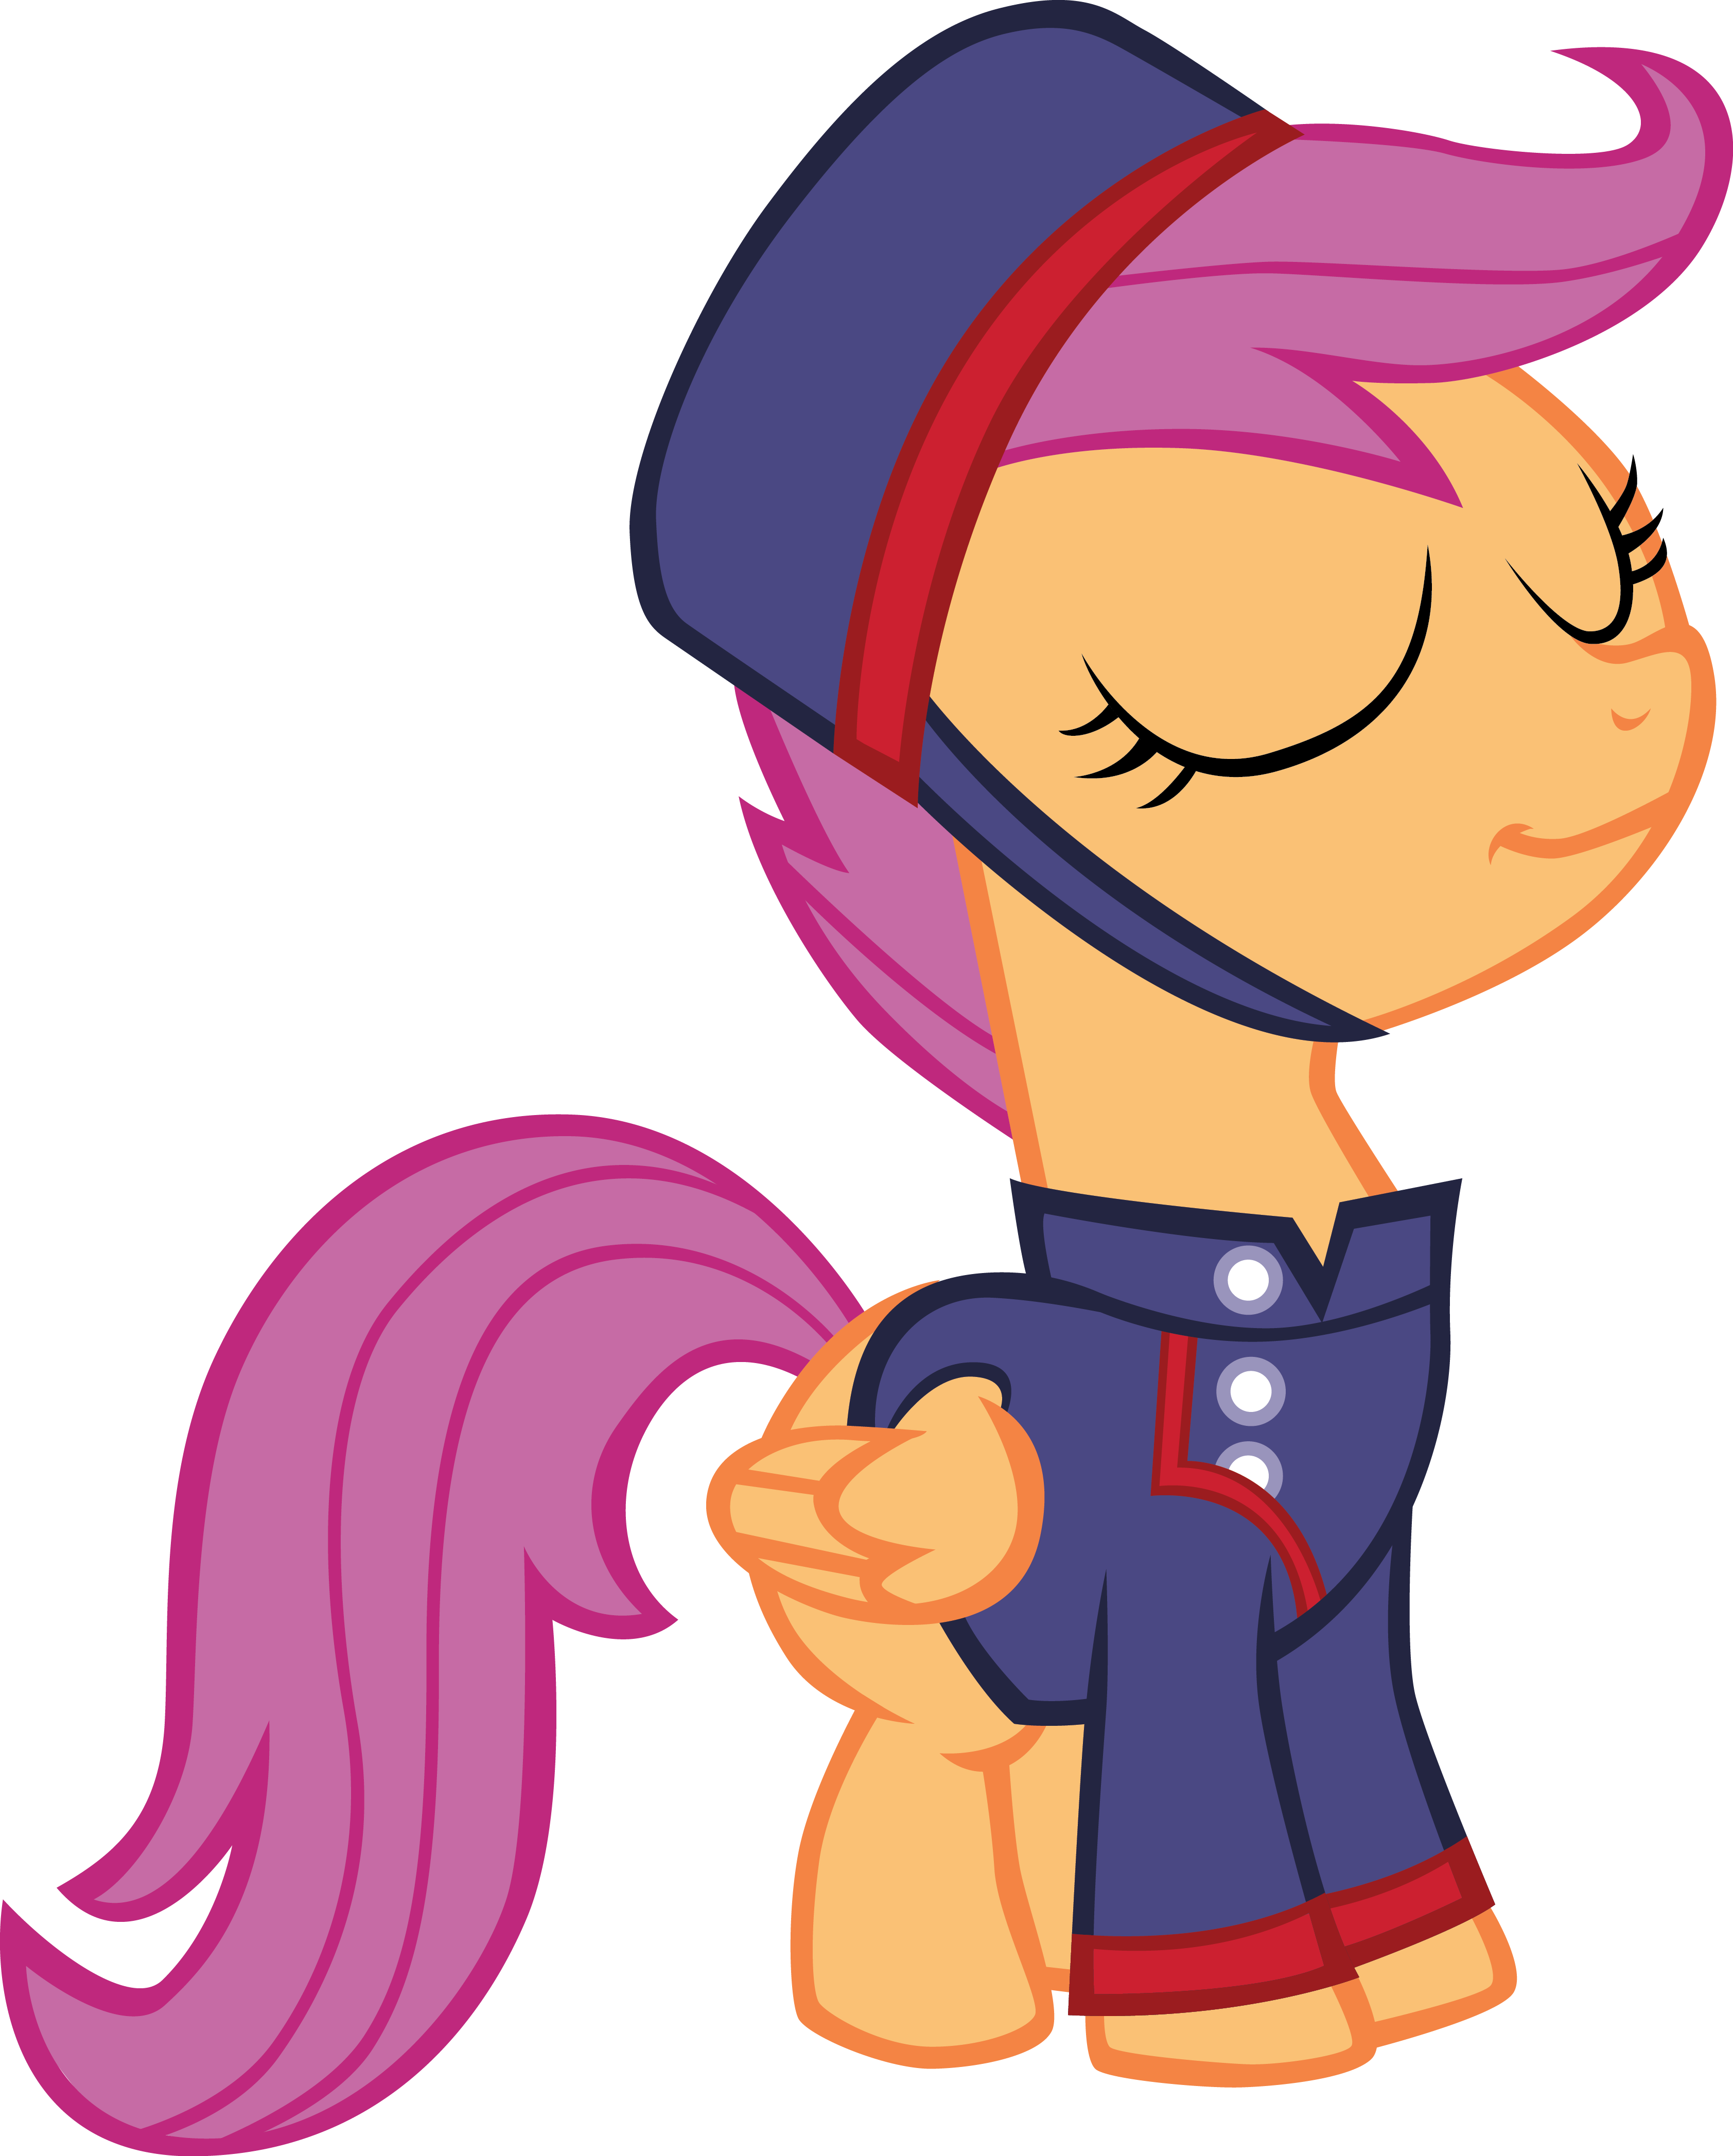 Mail clipart mail carrier. Junior scootaloo by sircinnamon